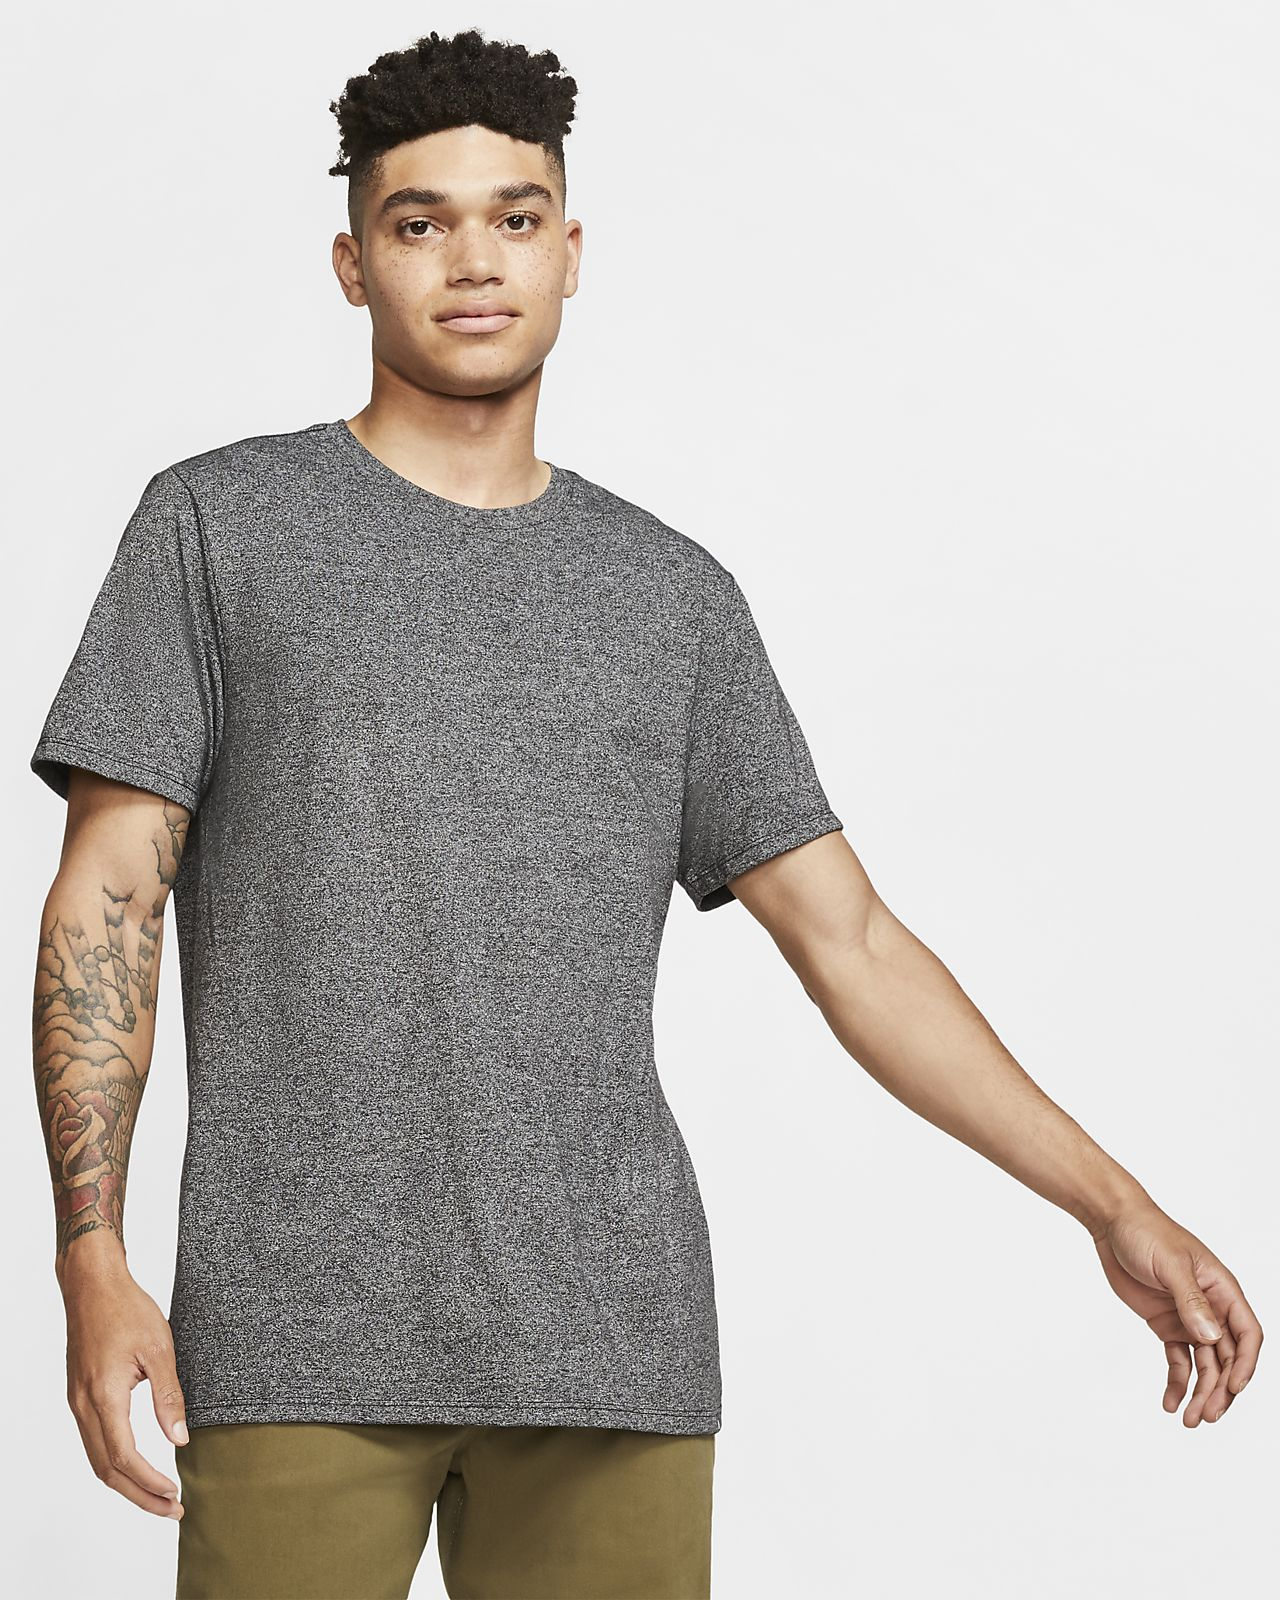 Hurley Staple Men's T-Shirt